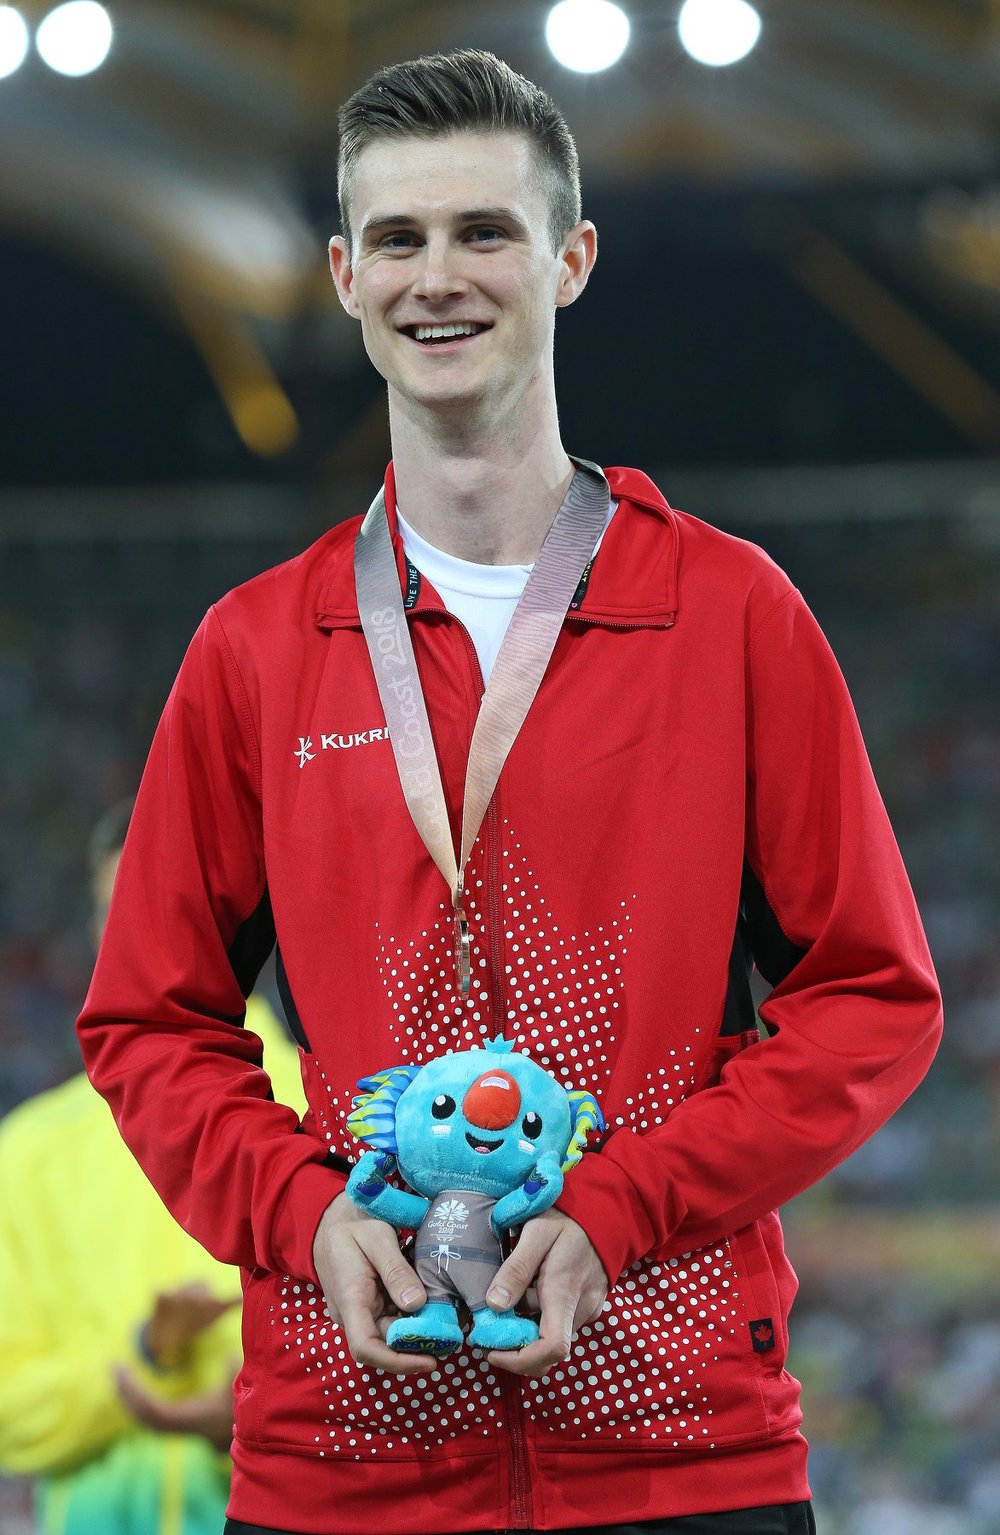 Surrey's Django Lovett chose a perfect time to set a personal best in the high jump with his 2.30m clearance. His bronze medal performance is only 1 centimeter from the Jerome Classic meet record of 2.31 set by World Champion, Jesse Williams of the USA.